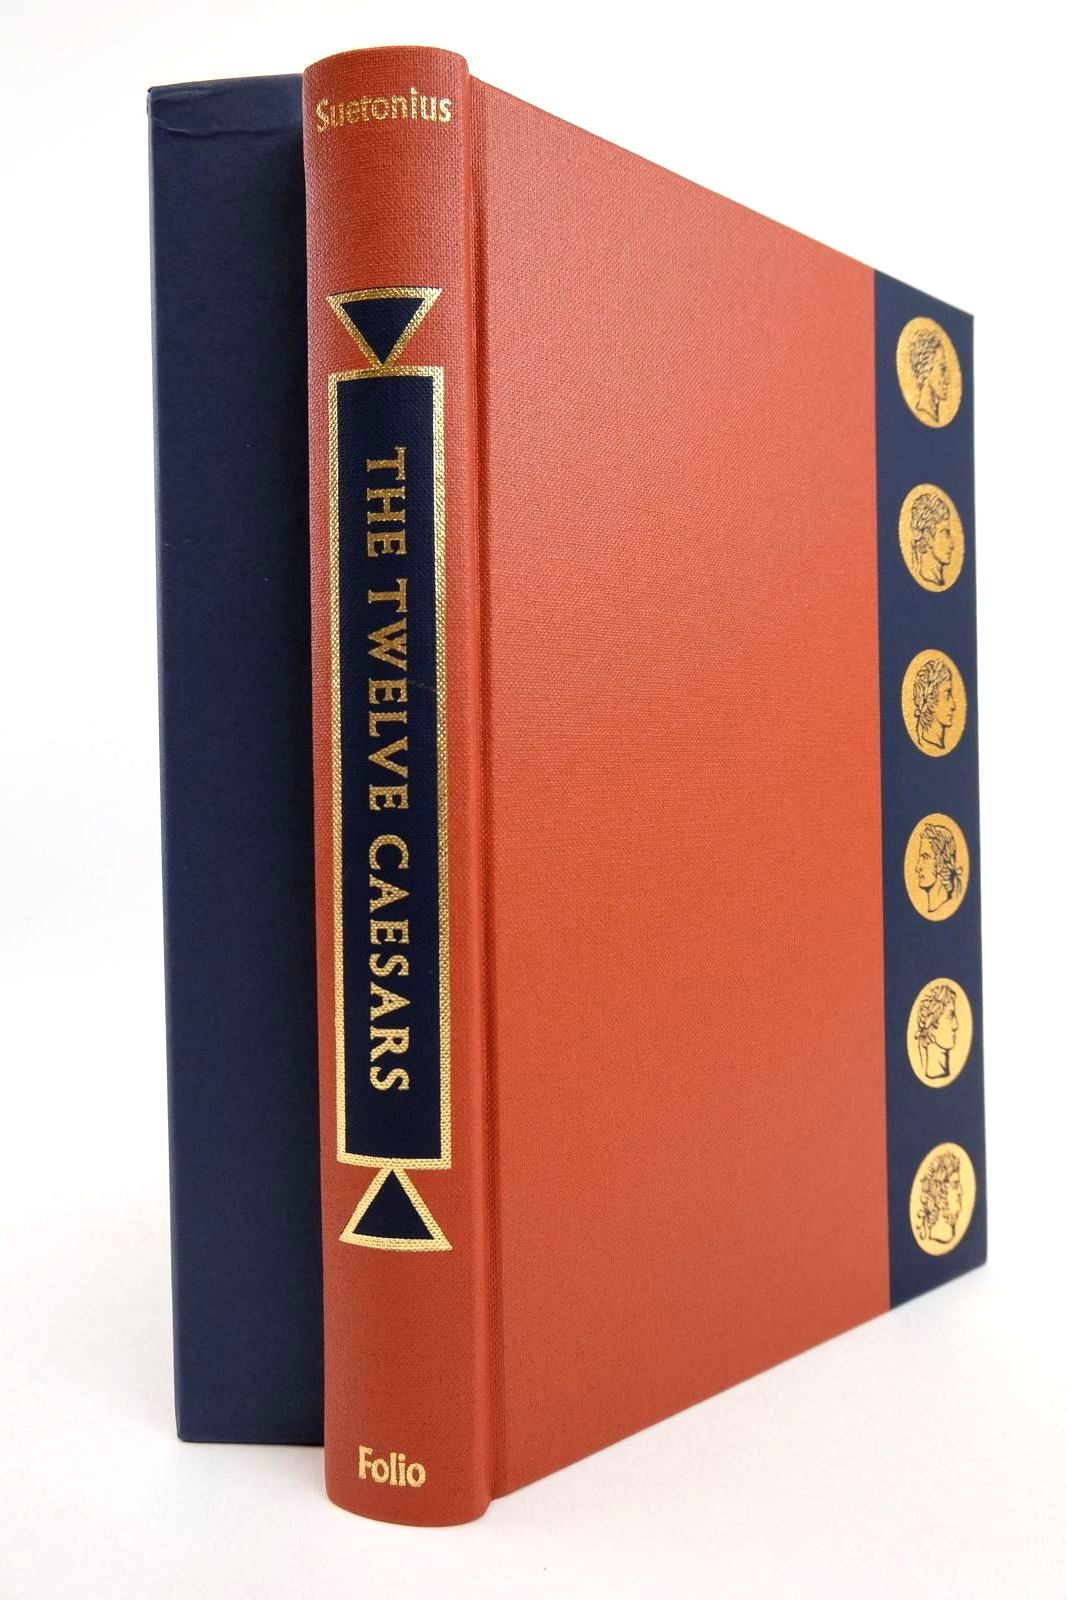 Photo of THE TWELVE CAESARS written by Tranquillus, Gaius Suetonius Graves, Robert illustrated by Hawthorn, Raymond published by Folio Society (STOCK CODE: 2133162)  for sale by Stella & Rose's Books